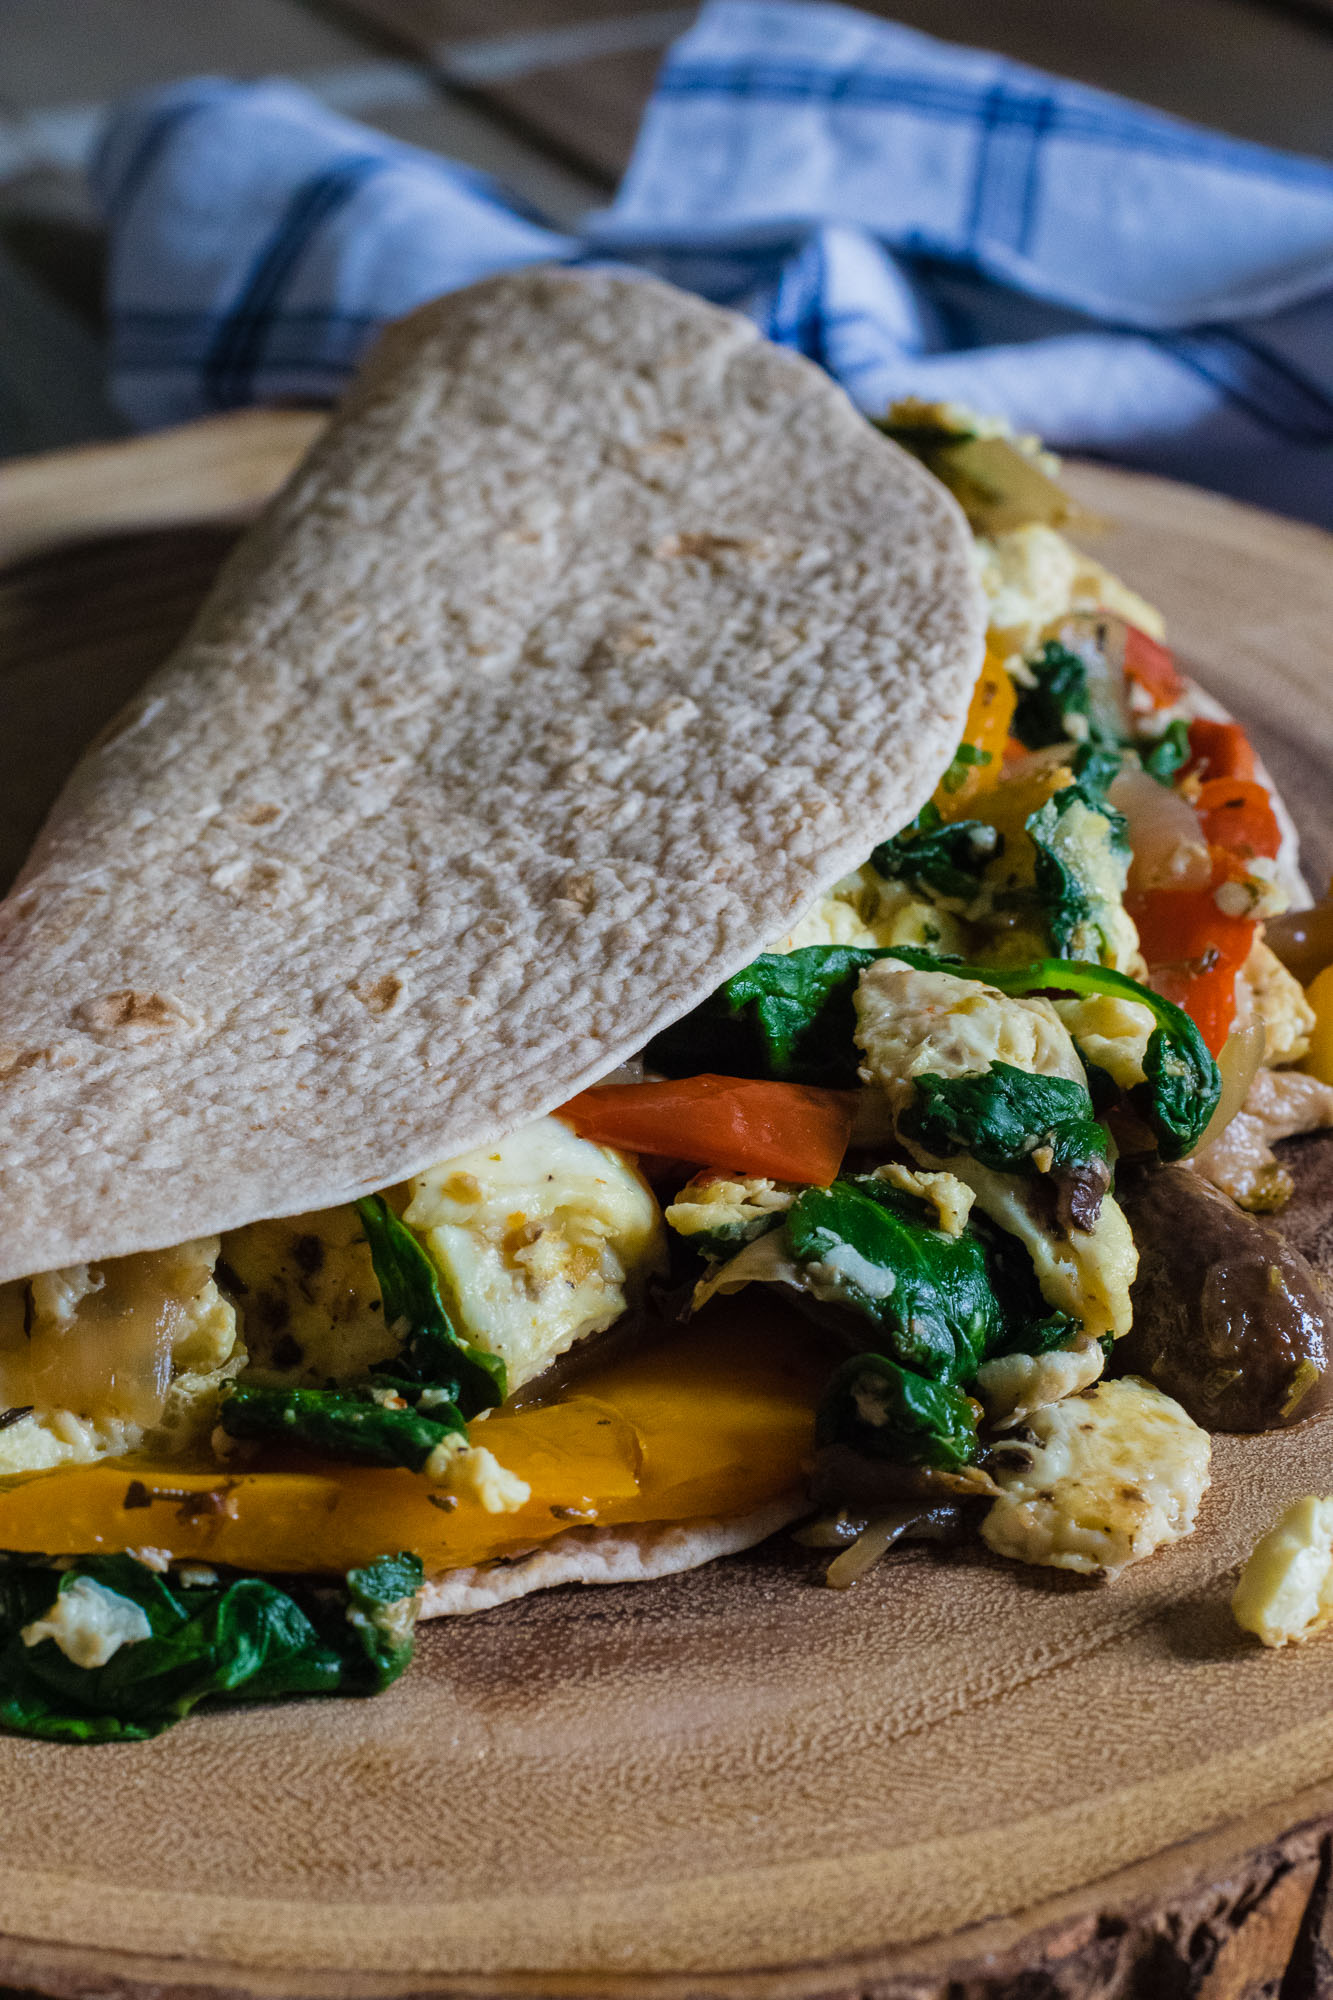 Egg White Spinach Wrap with Sautéed Peppers, Onions and Mushrooms